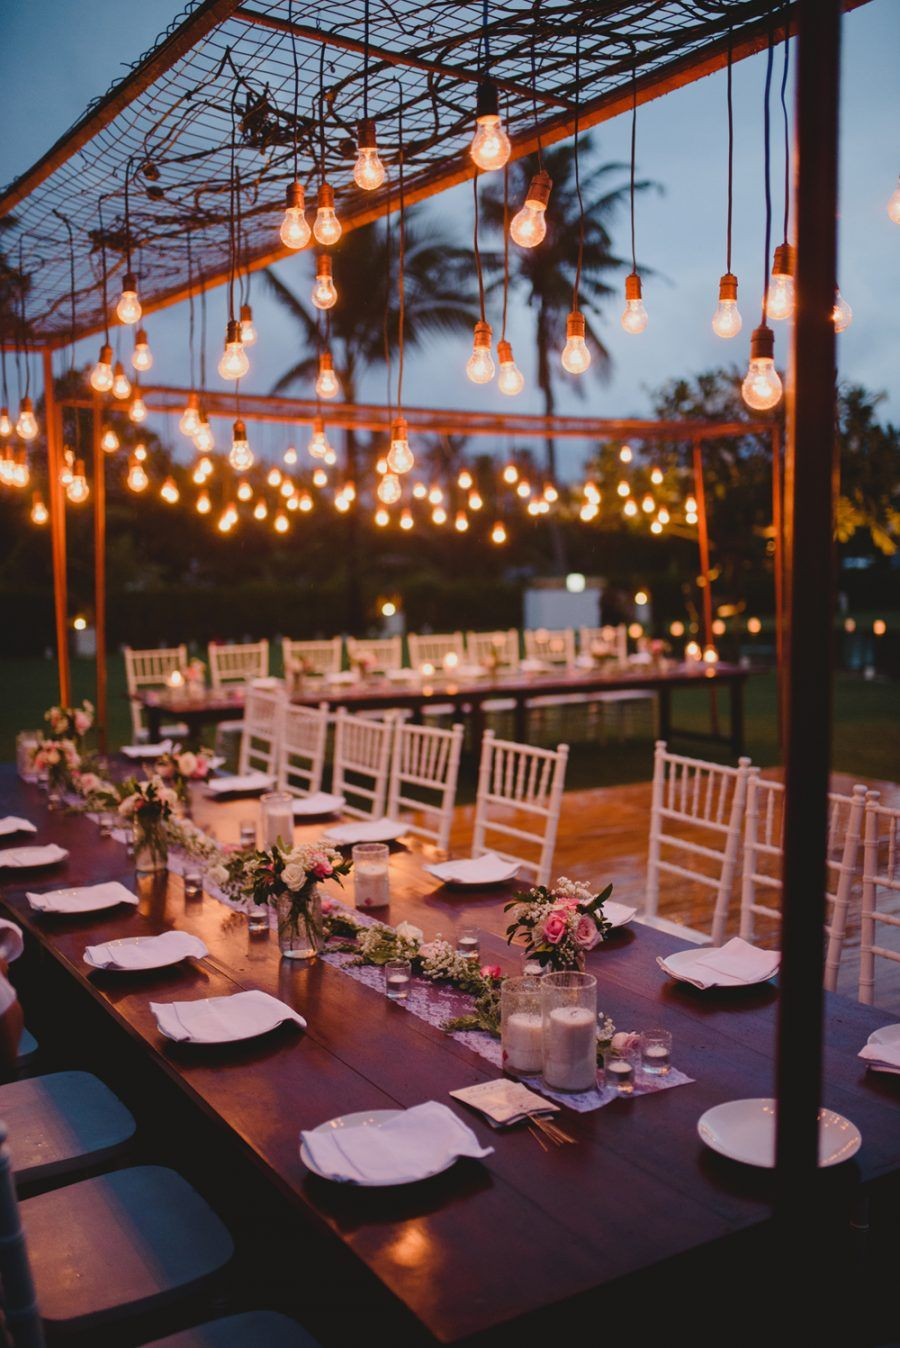 Outdoor Wedding Table Setting With Hanging Lights Bali